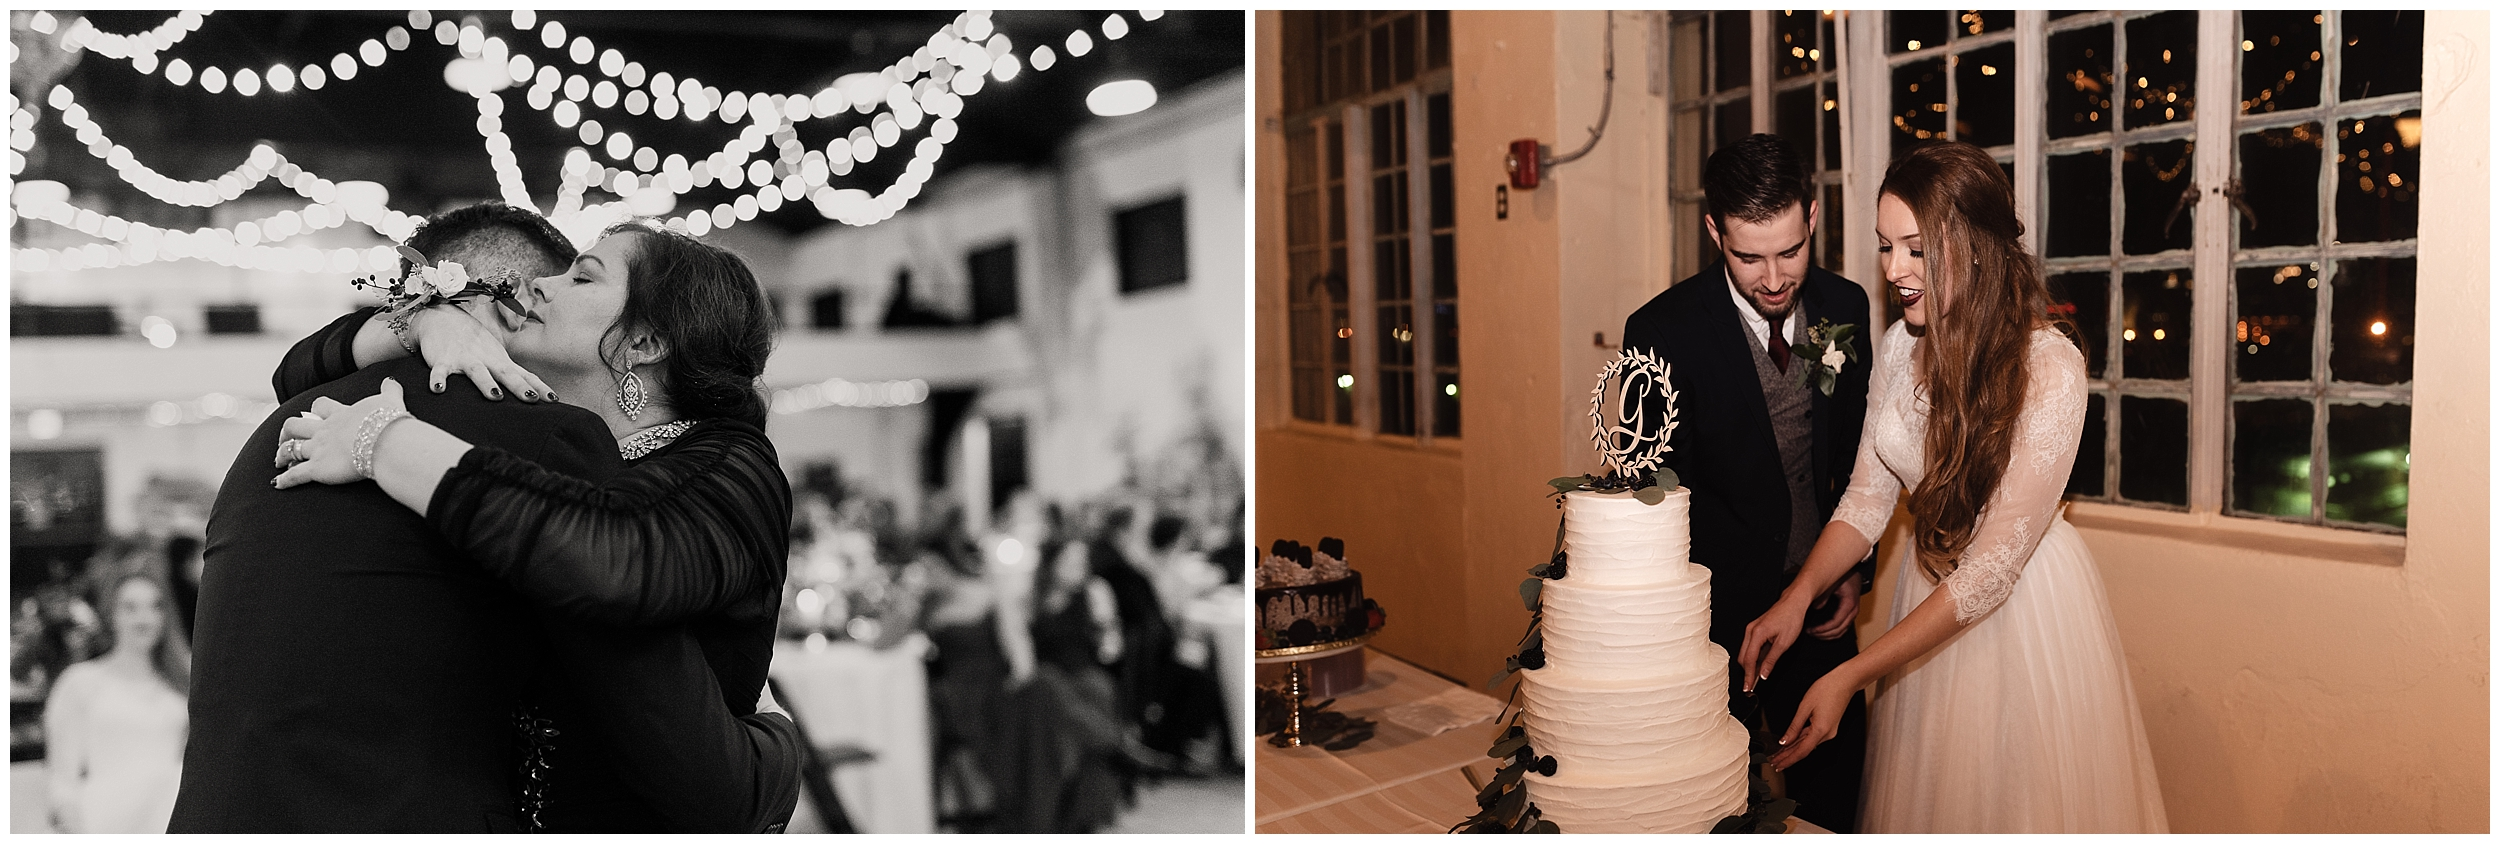 oklahoma wedding photographer reception family friends hugs congratulations best wishes toasts cake cutting